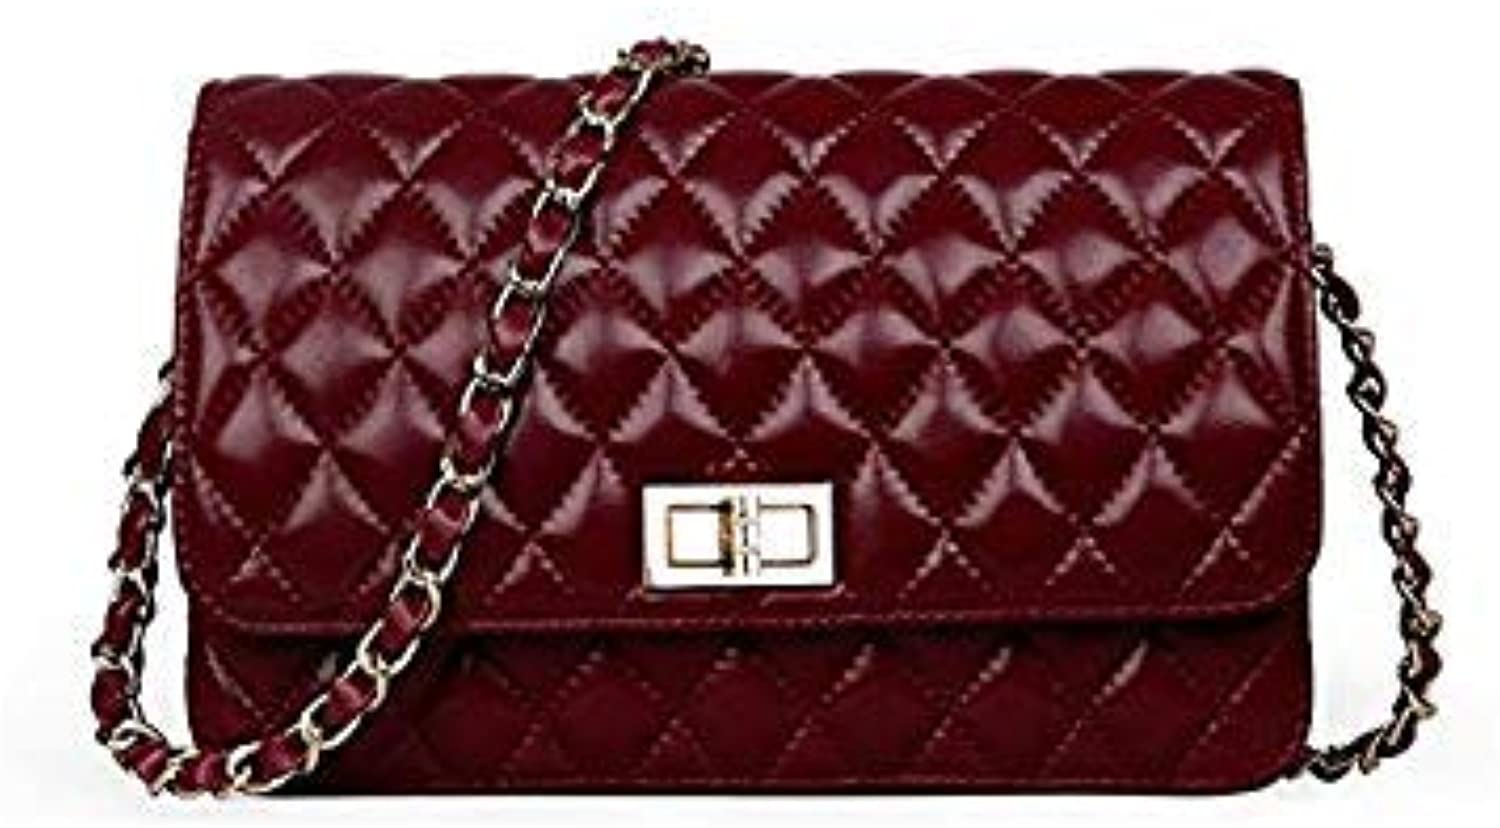 Bloomerang Genuine Leather Messenger Bag Chains Flap Bag Handbag Women 100% Sheepskin Classic Luxury Brand Crossbody Bag Black White color Dark red